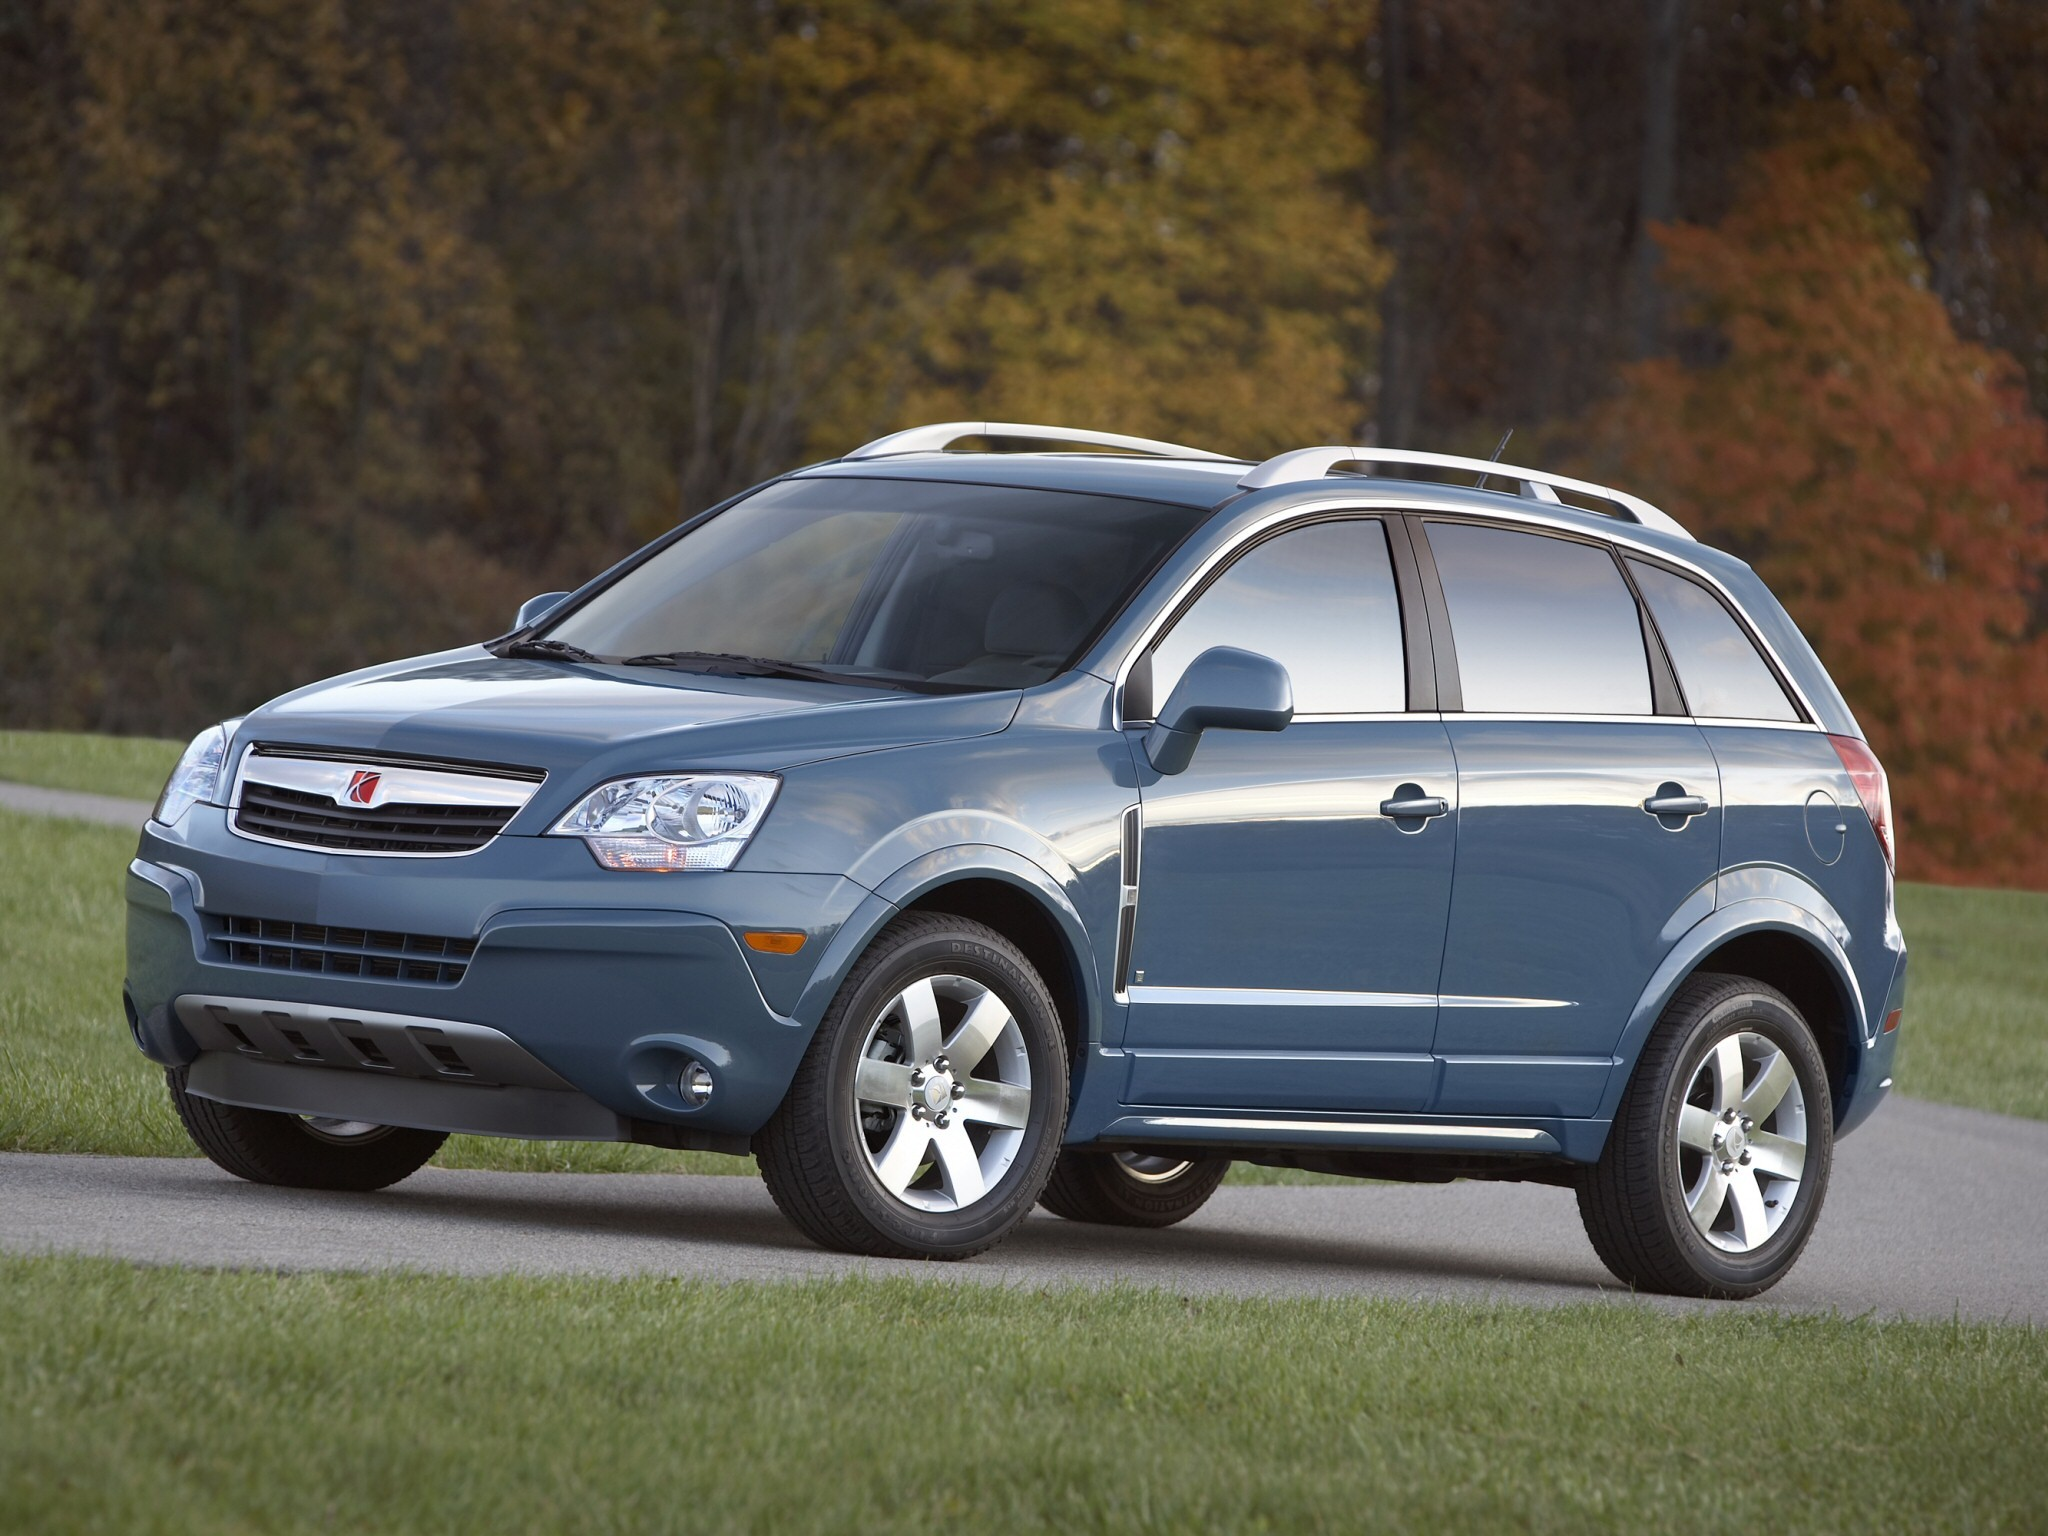 2007 Saturn Vue XR